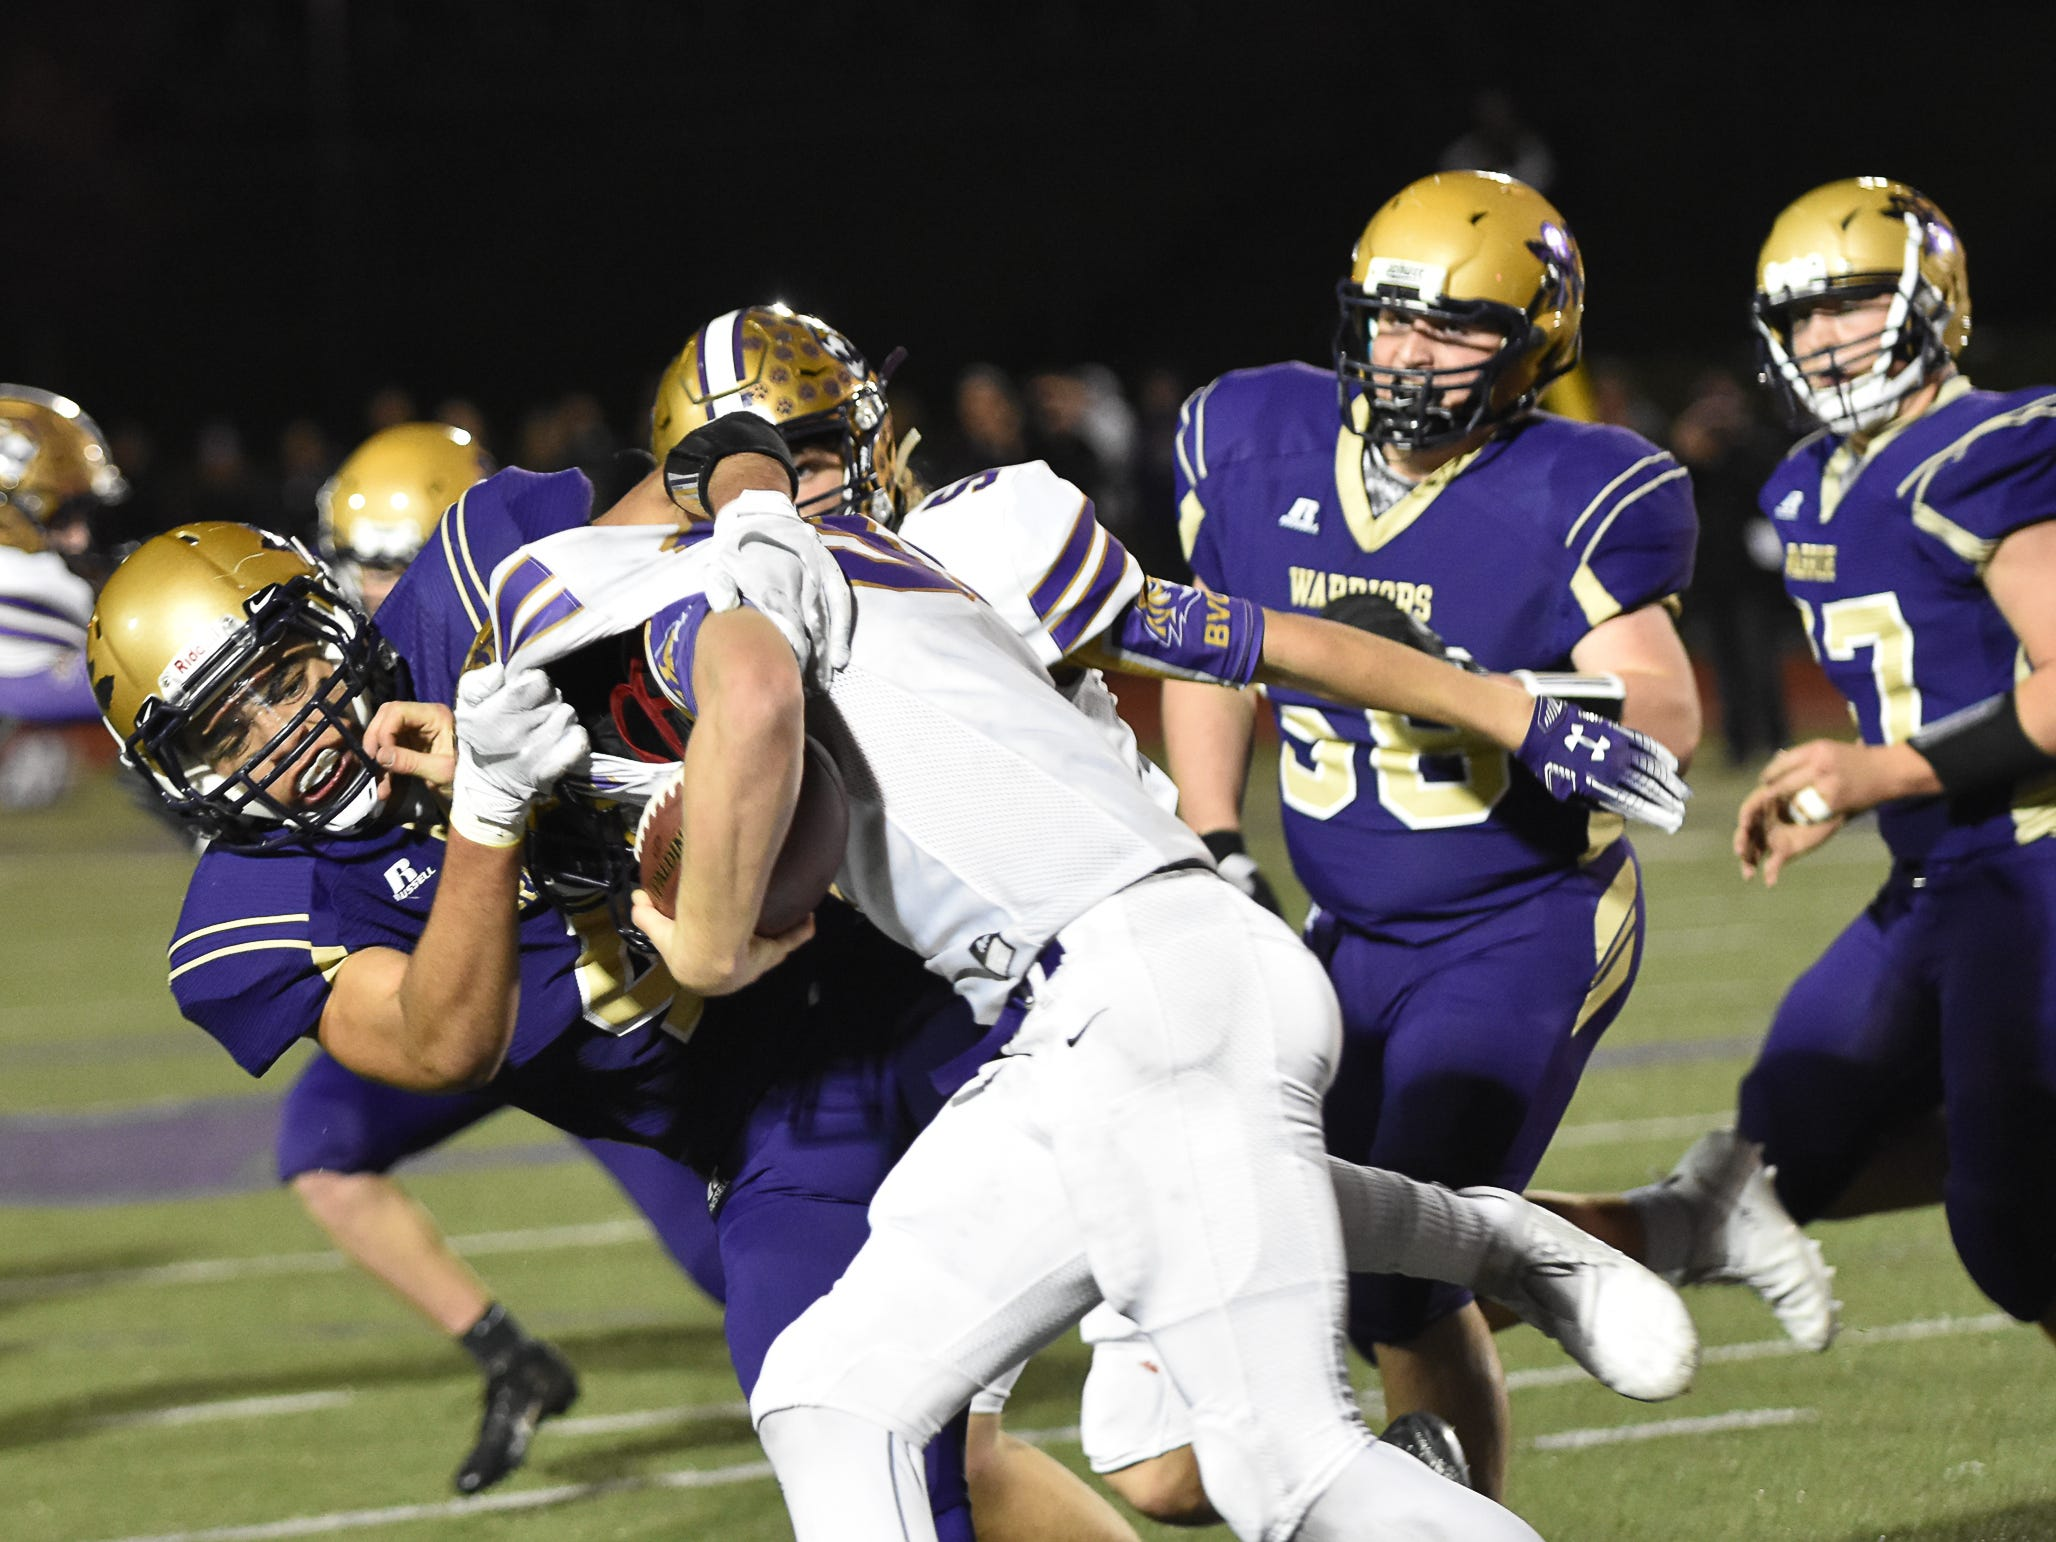 Norwalk's Dylan Wolfe tackles Isaiah Spencer during a first-round playoff game Friday in Norwalk. Spencer ended Norwalk's season Oct. 26, 2018, with a 24-20 win in the first round of the Class 3A playoffs.